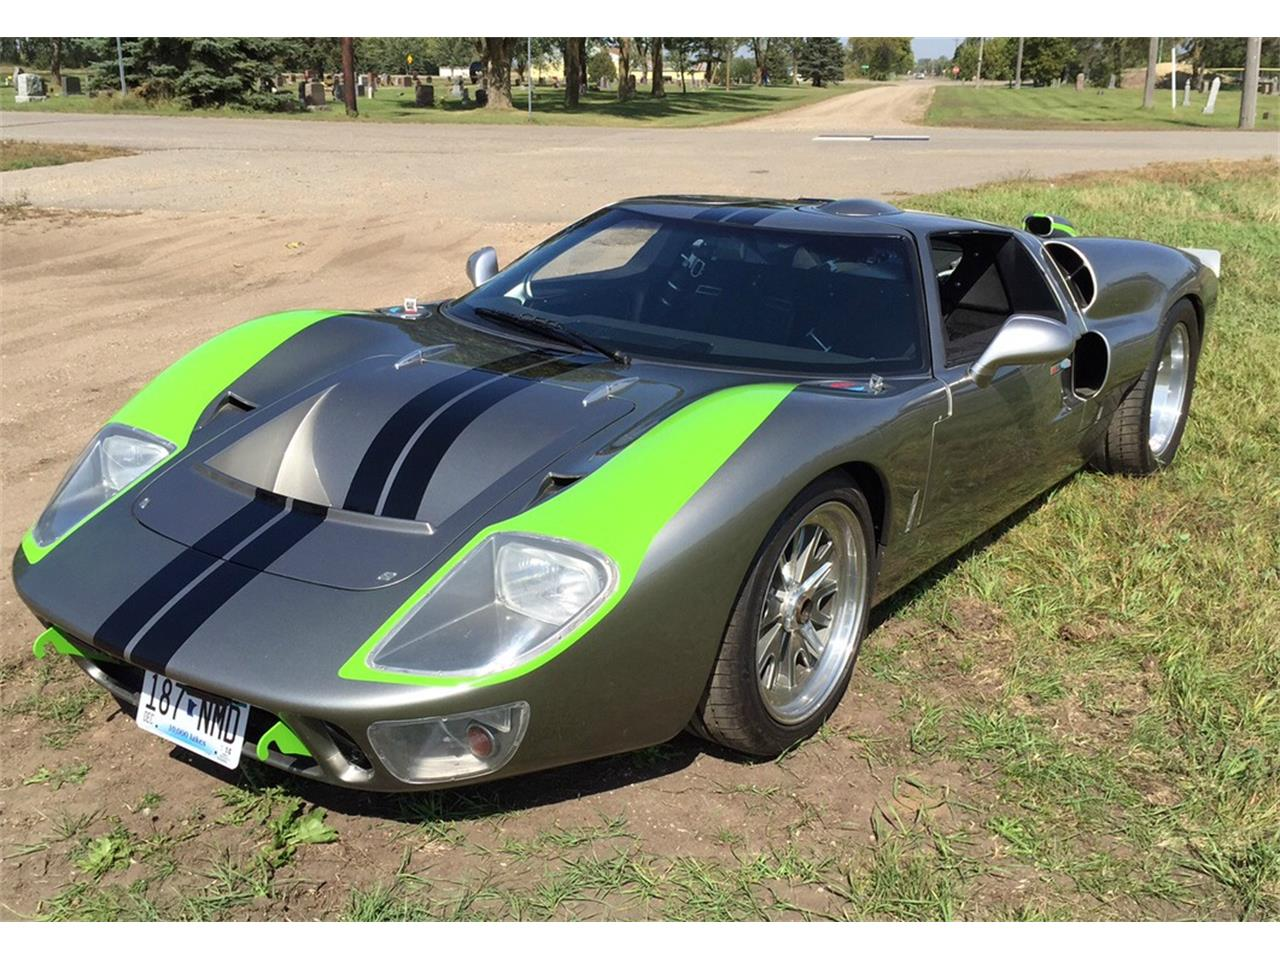 Large picture of 09 gt40 ftnb